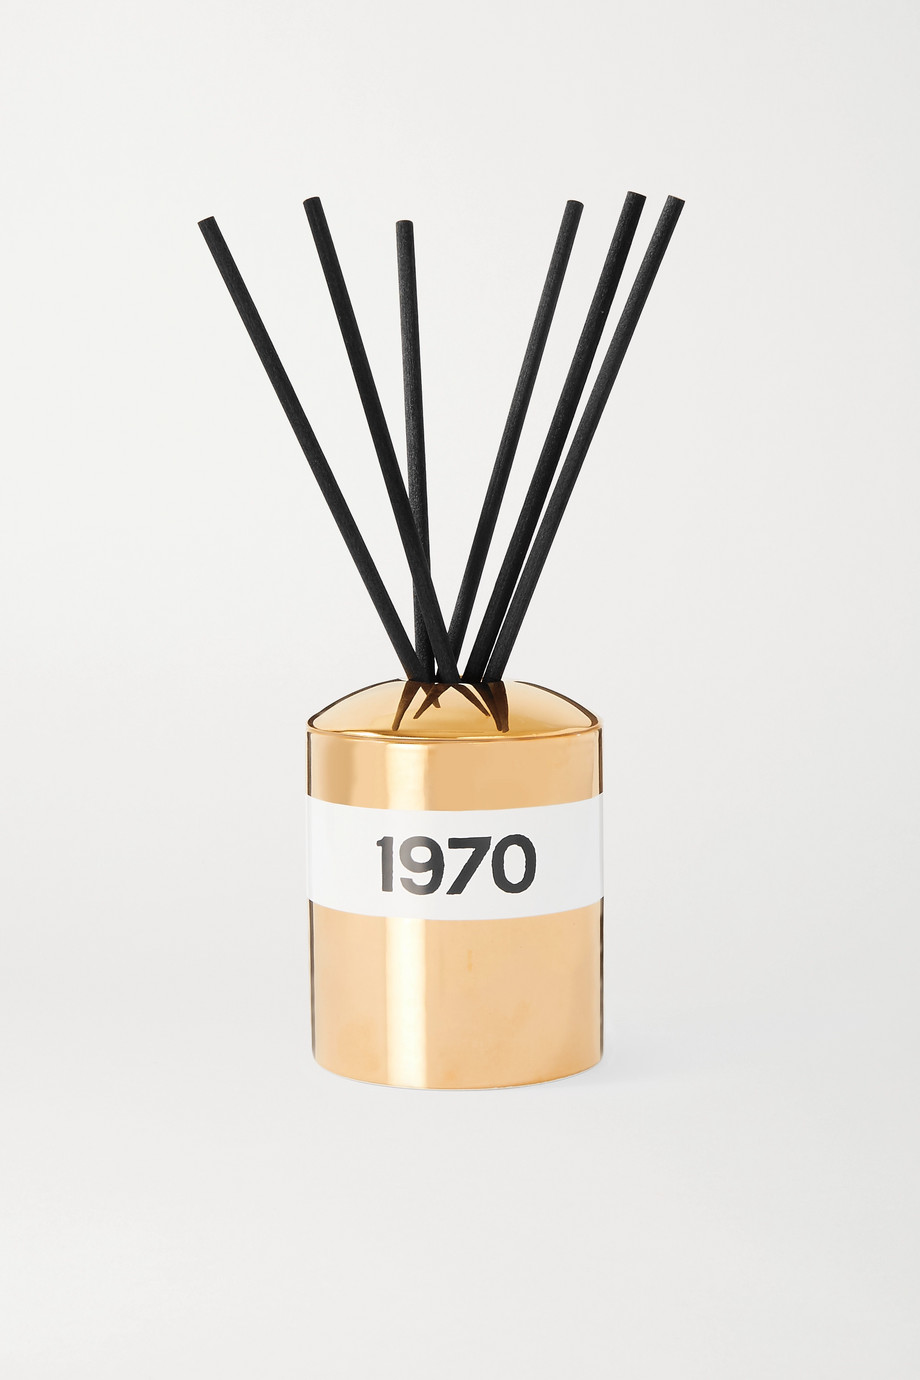 Bella Freud Parfum Reed diffuser - 1970, 300ml